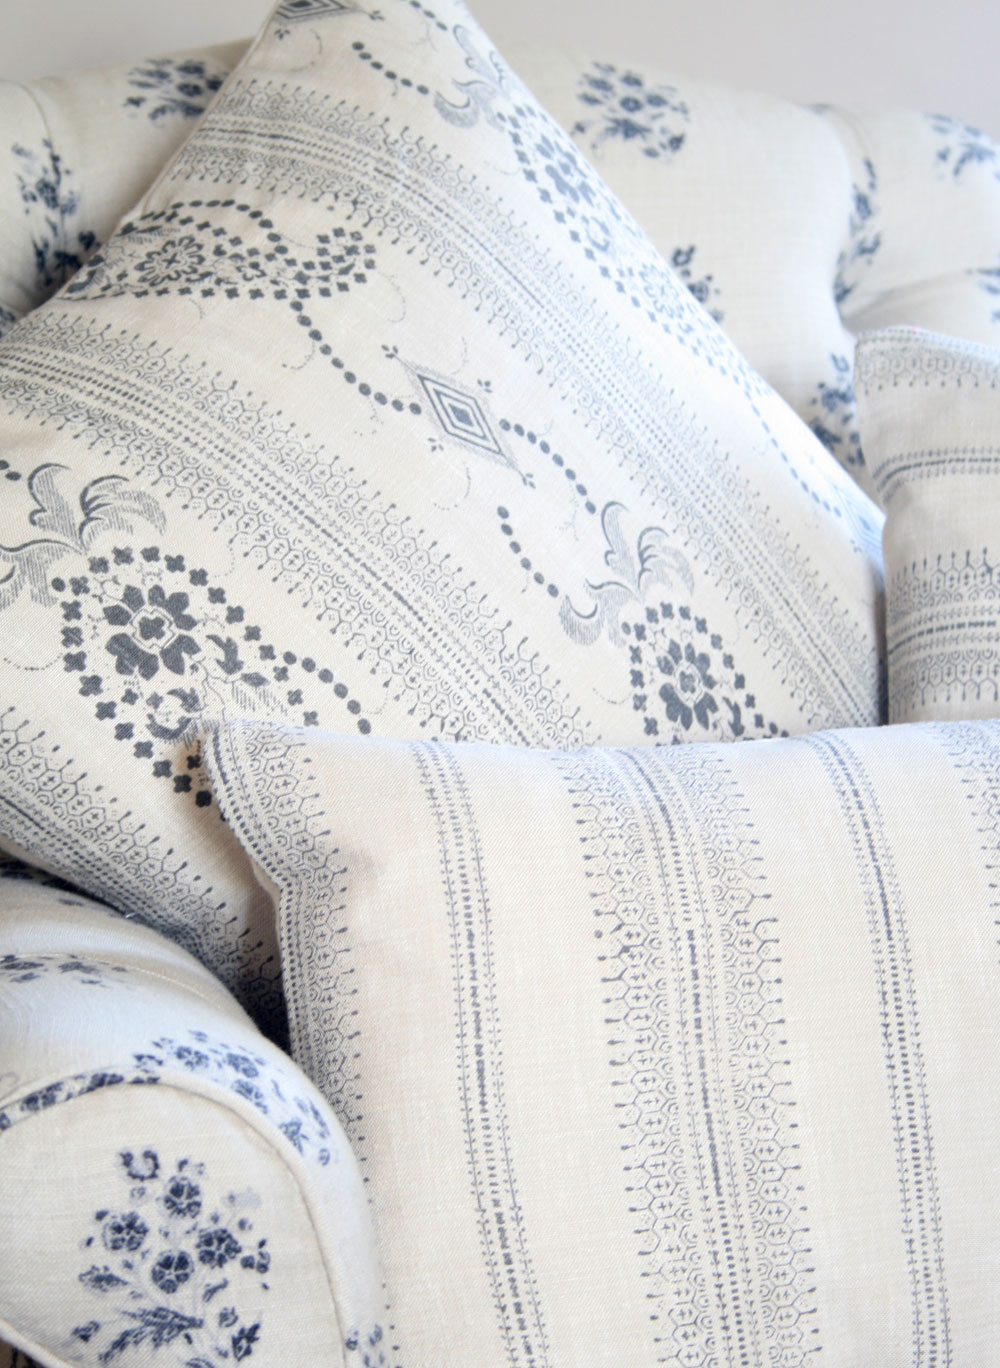 angelique-charcoal-camille-charcoal-cushions